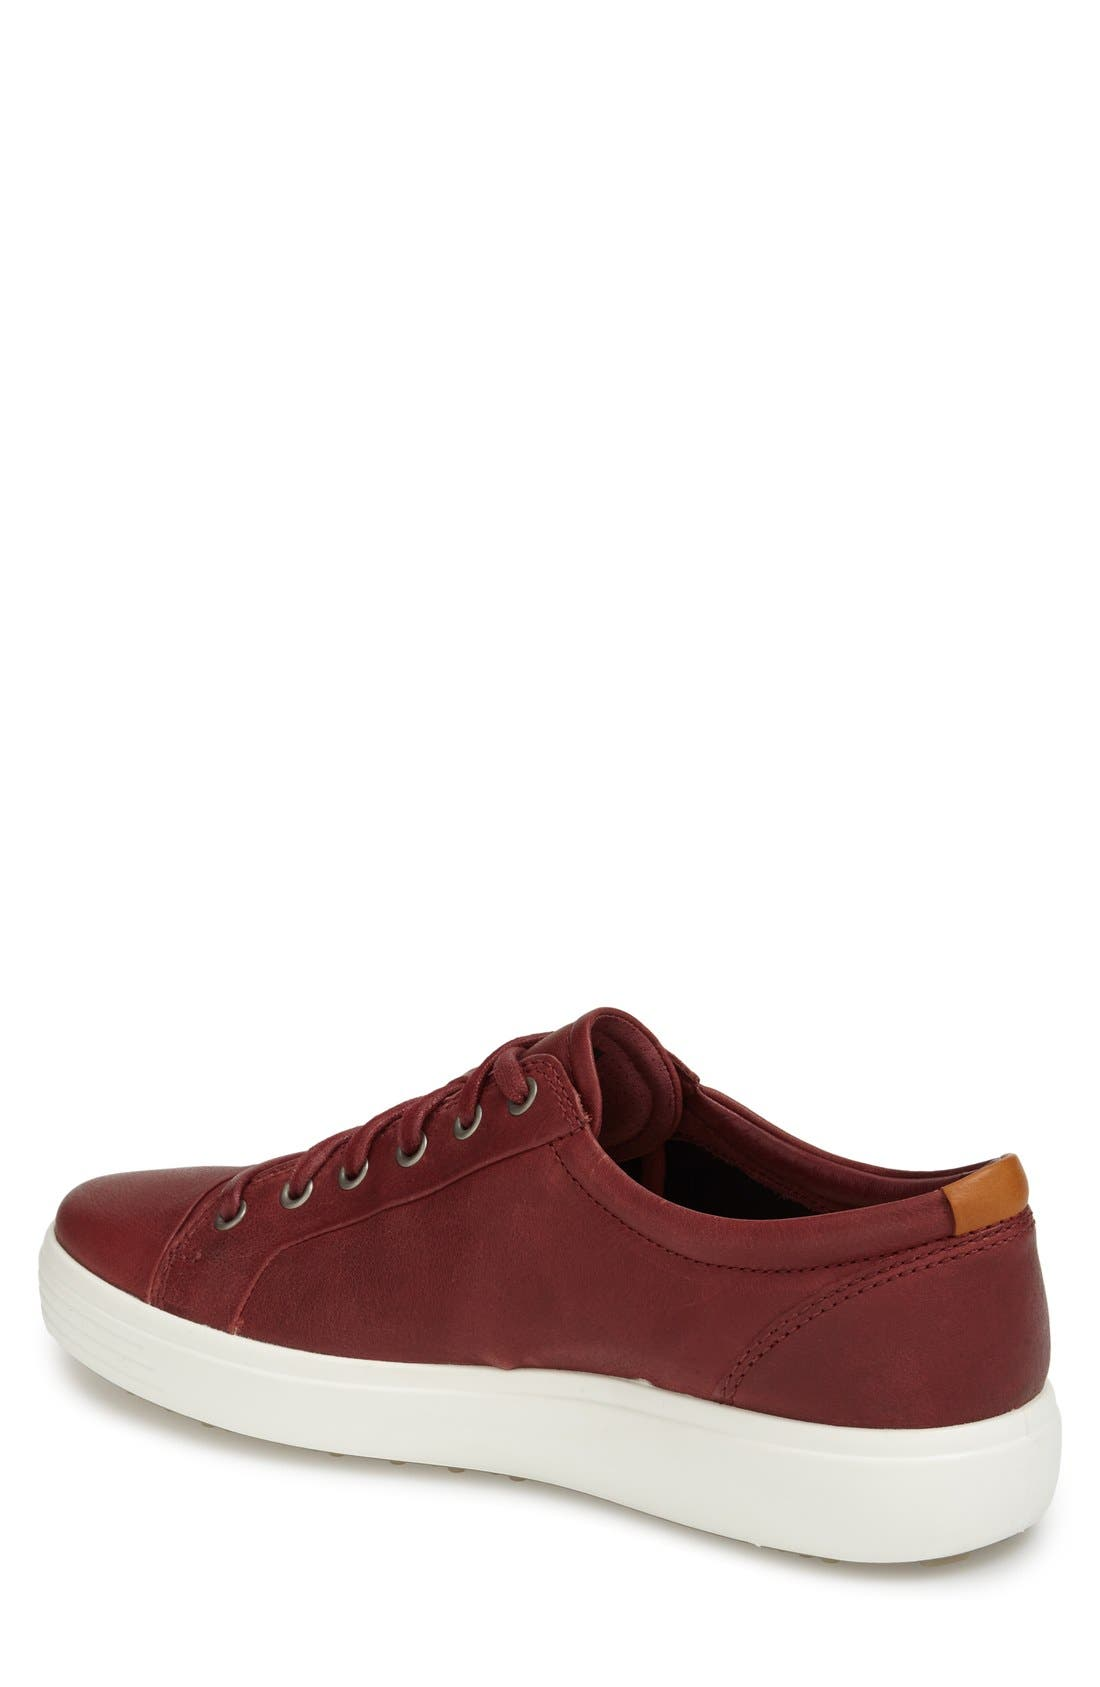 Soft VII Lace-Up Sneaker,                             Alternate thumbnail 76, color,